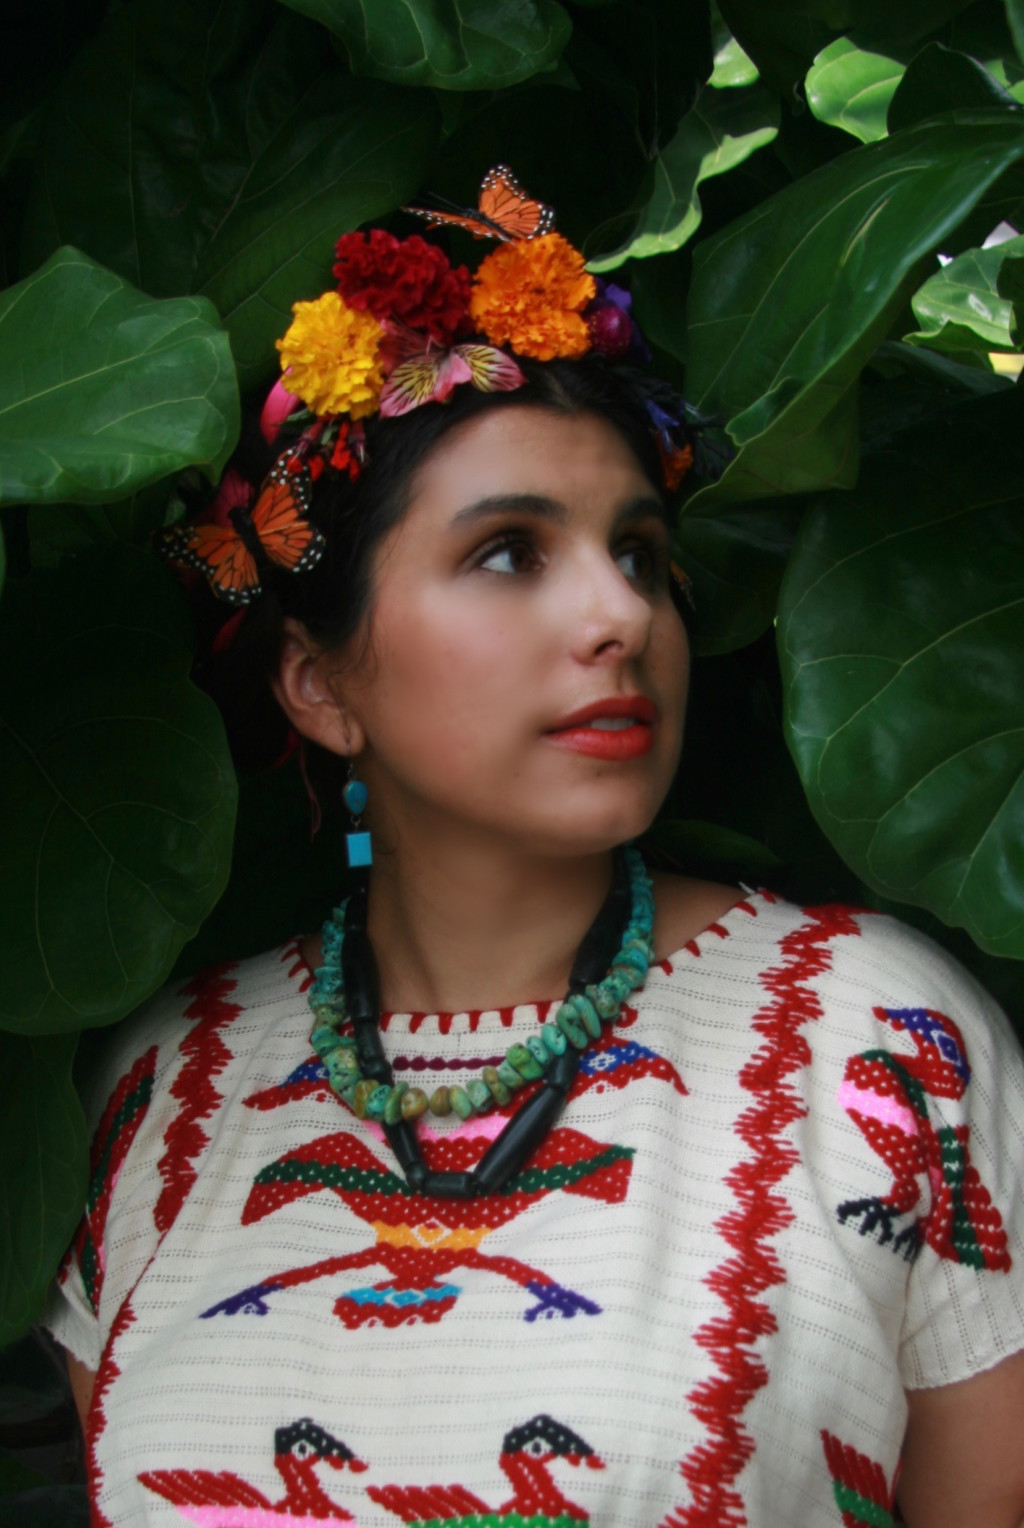 Michelle is wearing a traditional Mexican embroidered blouse and stone necklaces. She has flowers in her hair and is standing among leaves.